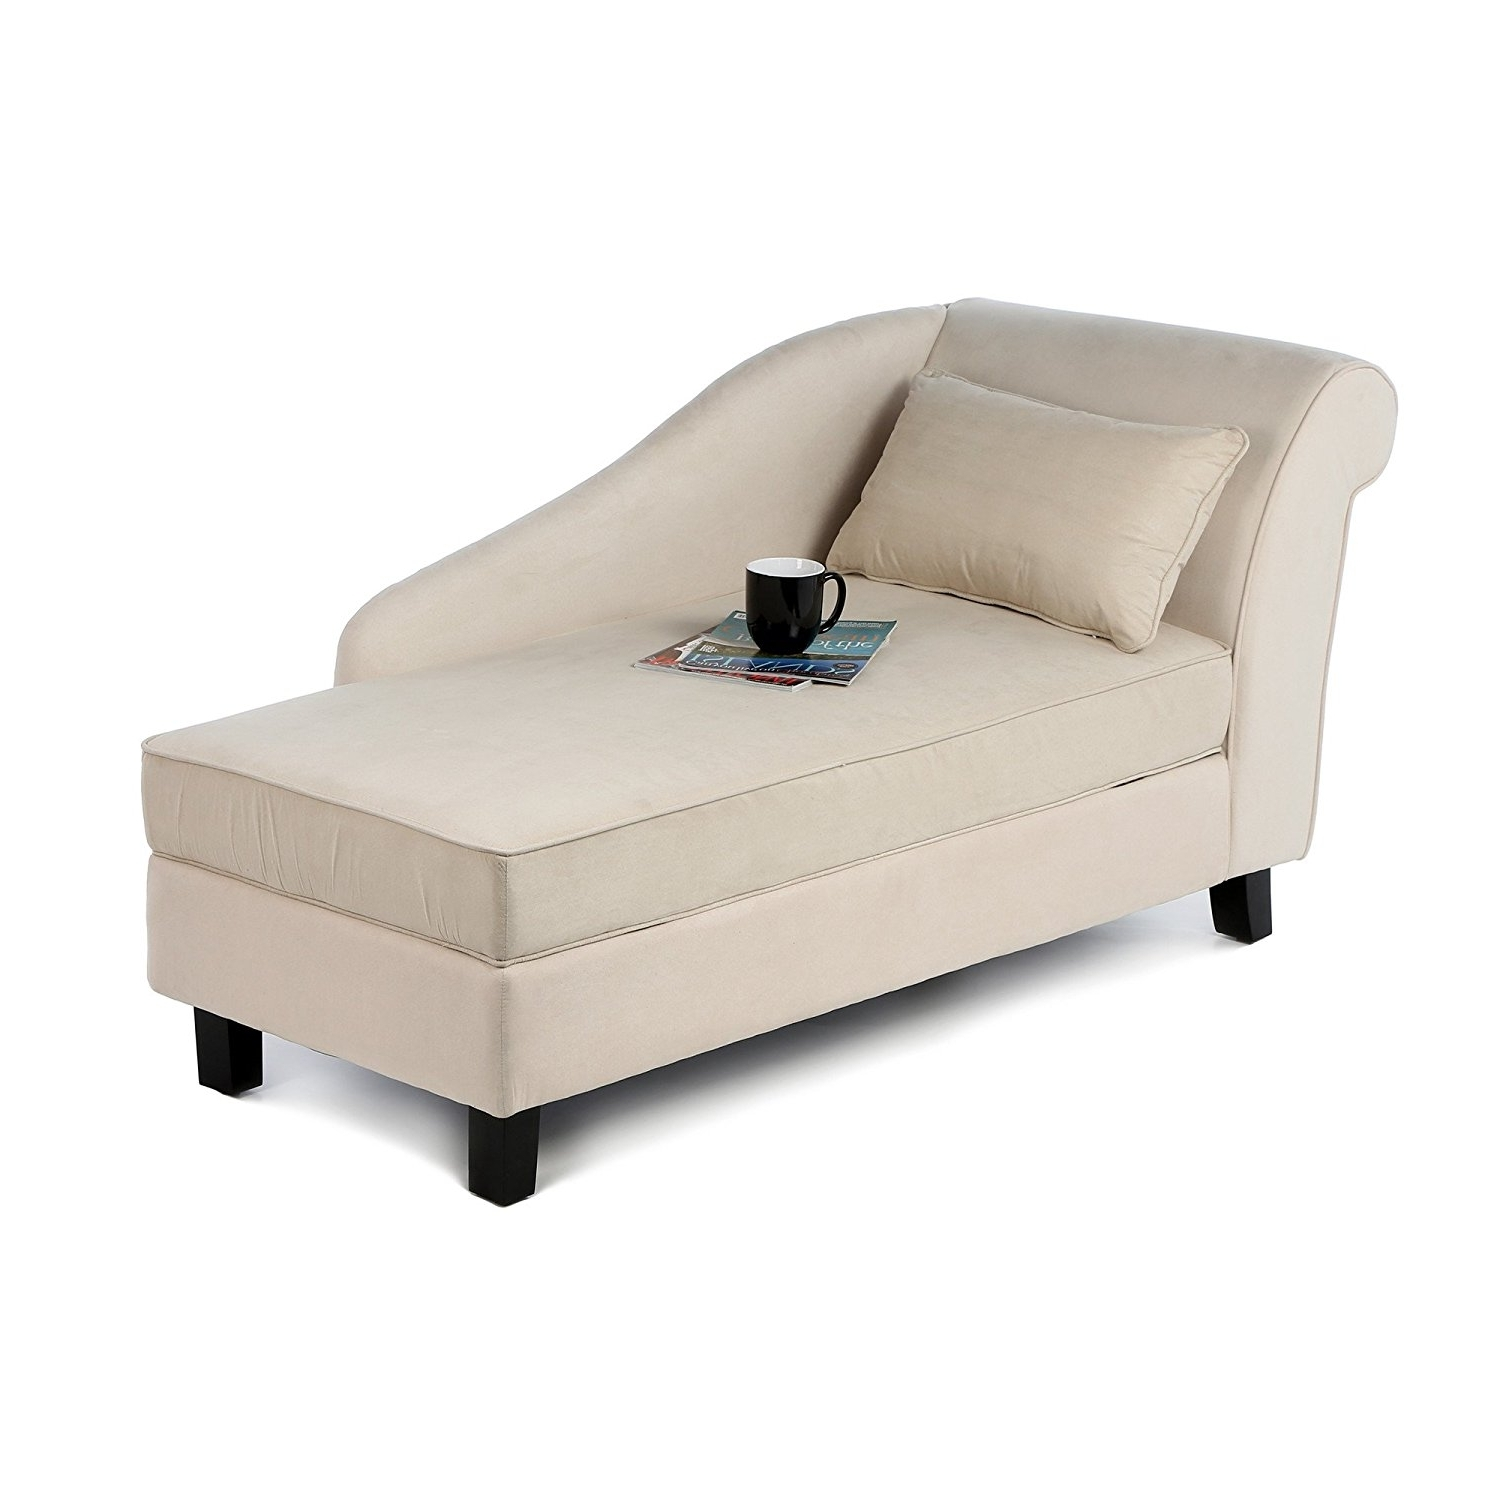 Amazon: Castleton Home Storage Chaise Lounge Modern Long Chair Within 2017 Chaise Lounges With Storage (View 2 of 15)